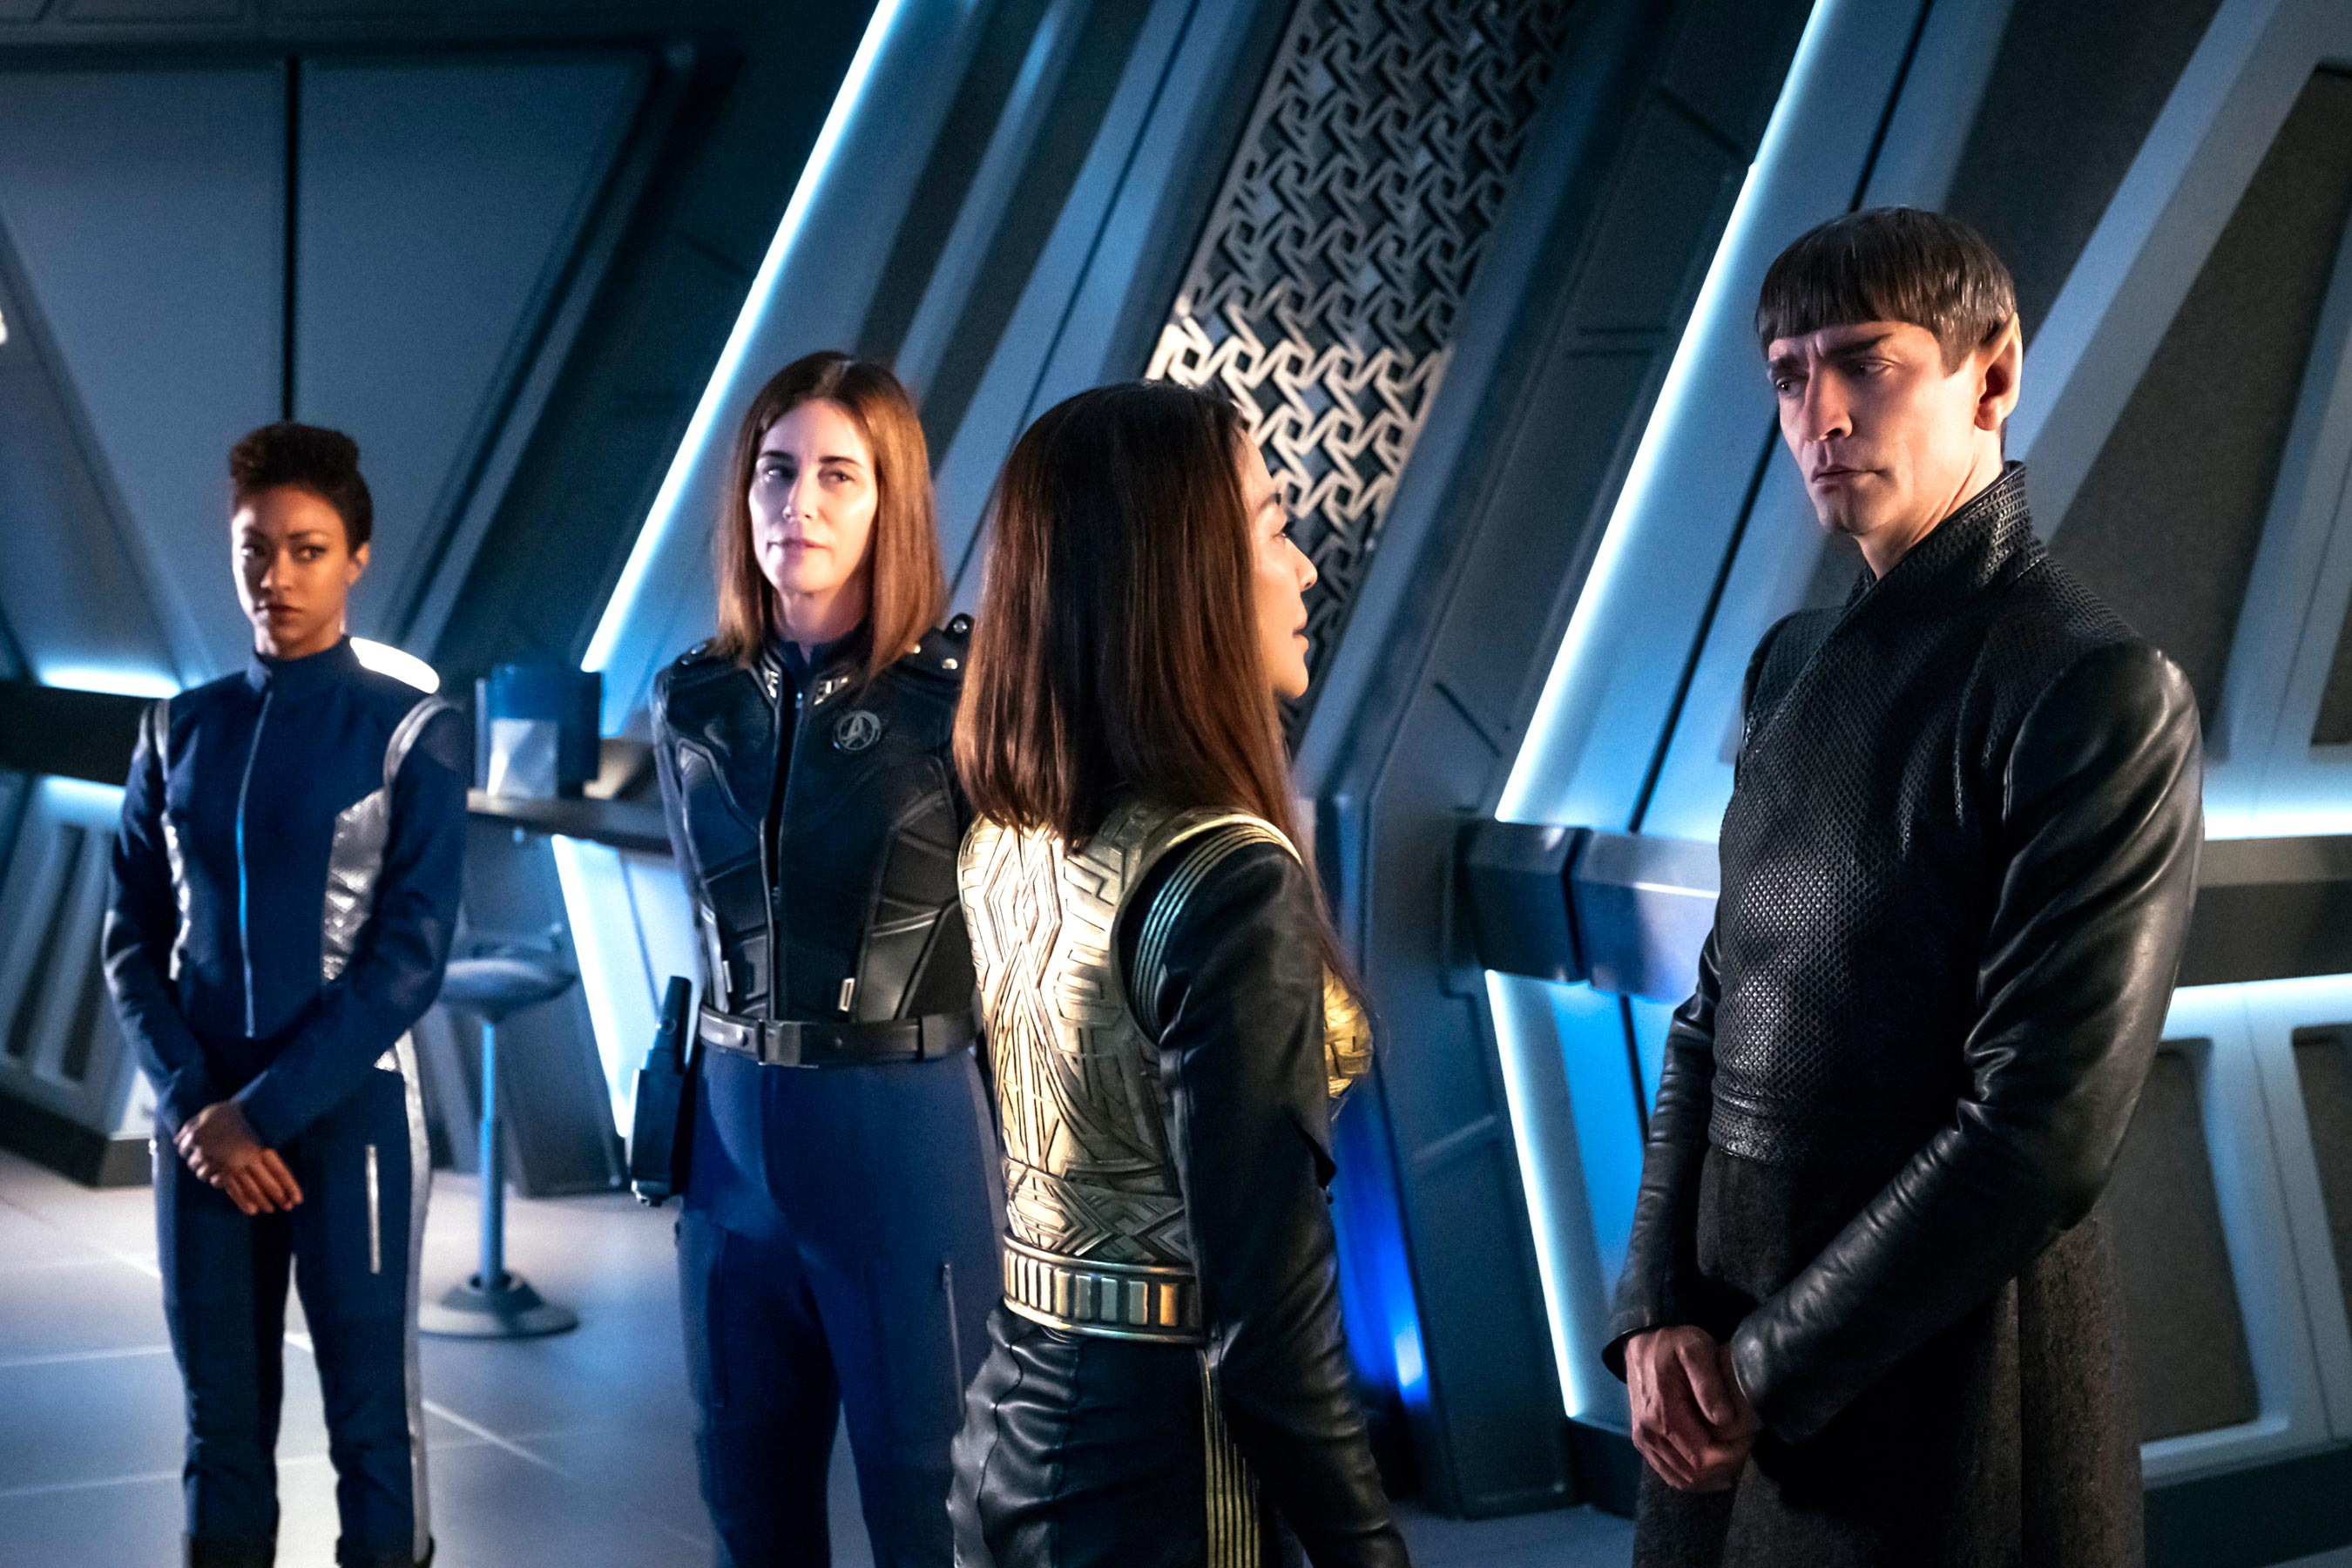 Star Trek: Discovery backpedals in a talky, table-setting episode before finale